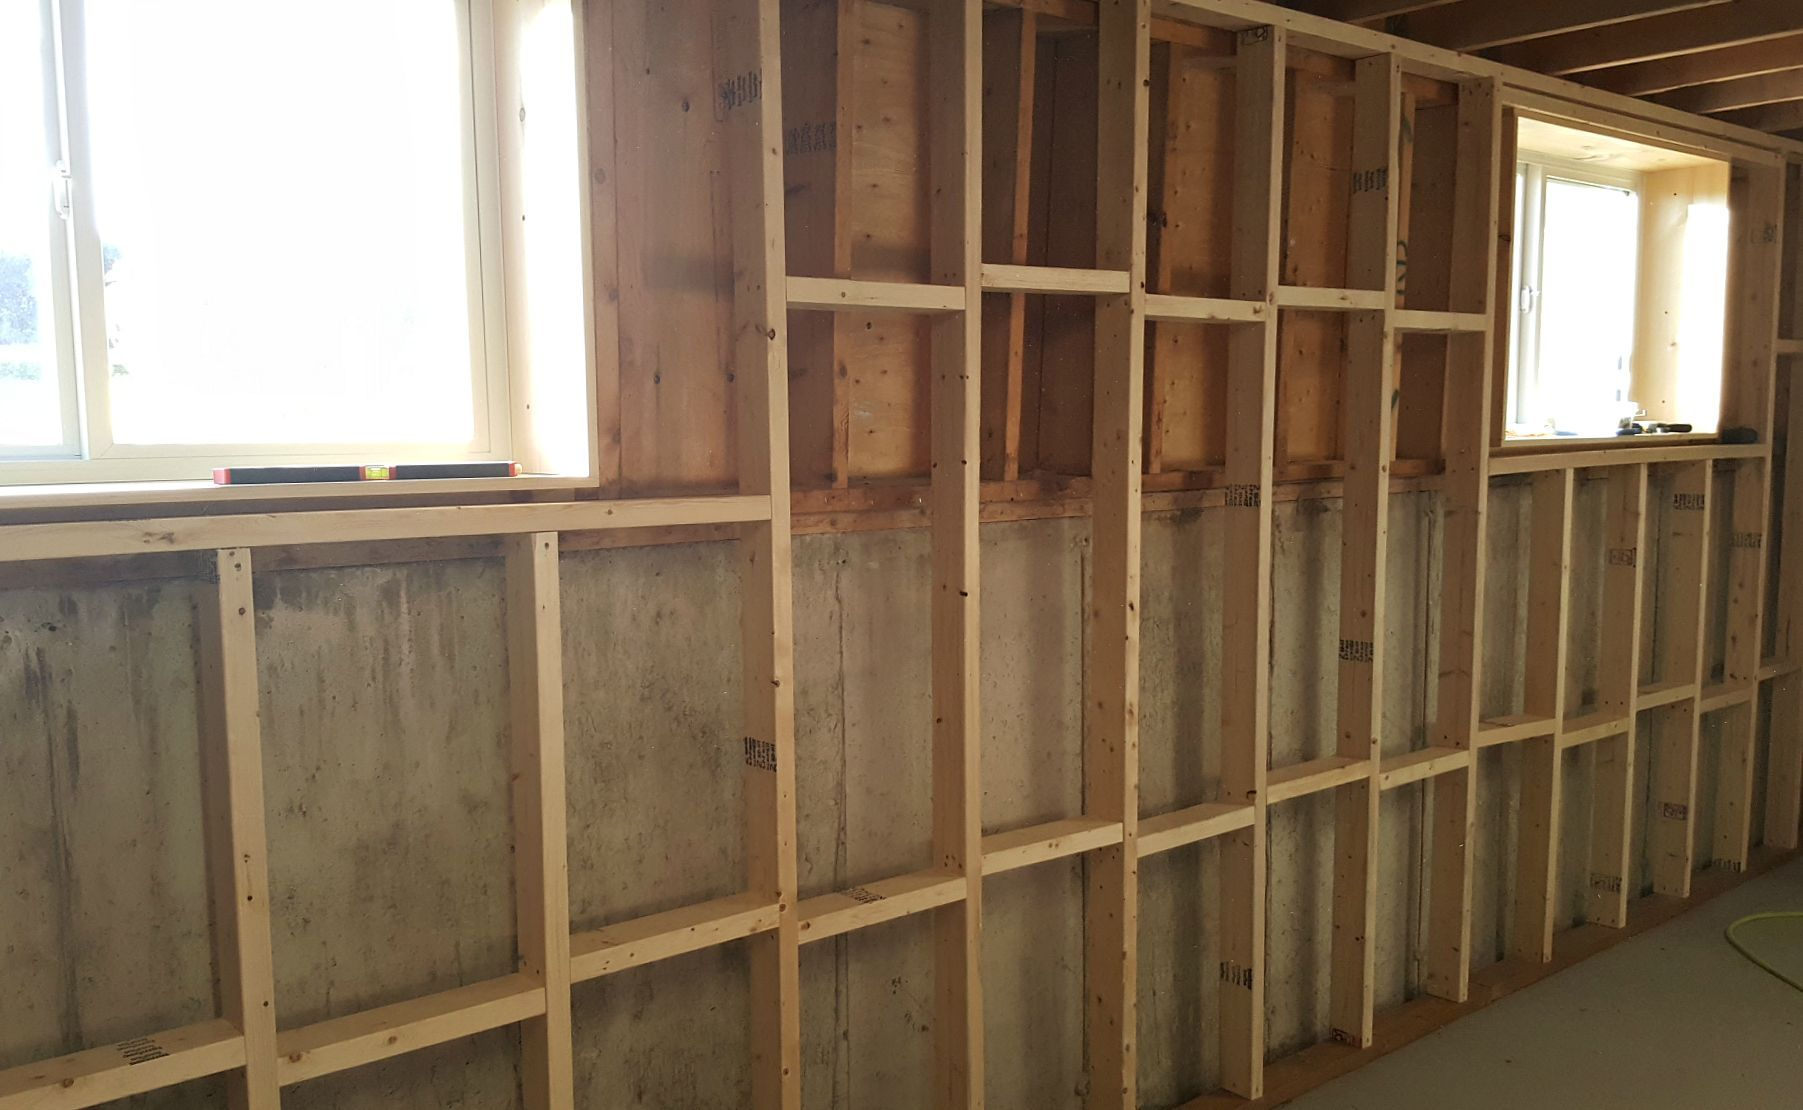 Basement Framing And Spray Foam Insulation Framing Basement Walls Basement Remodel Diy Basement Remodeling